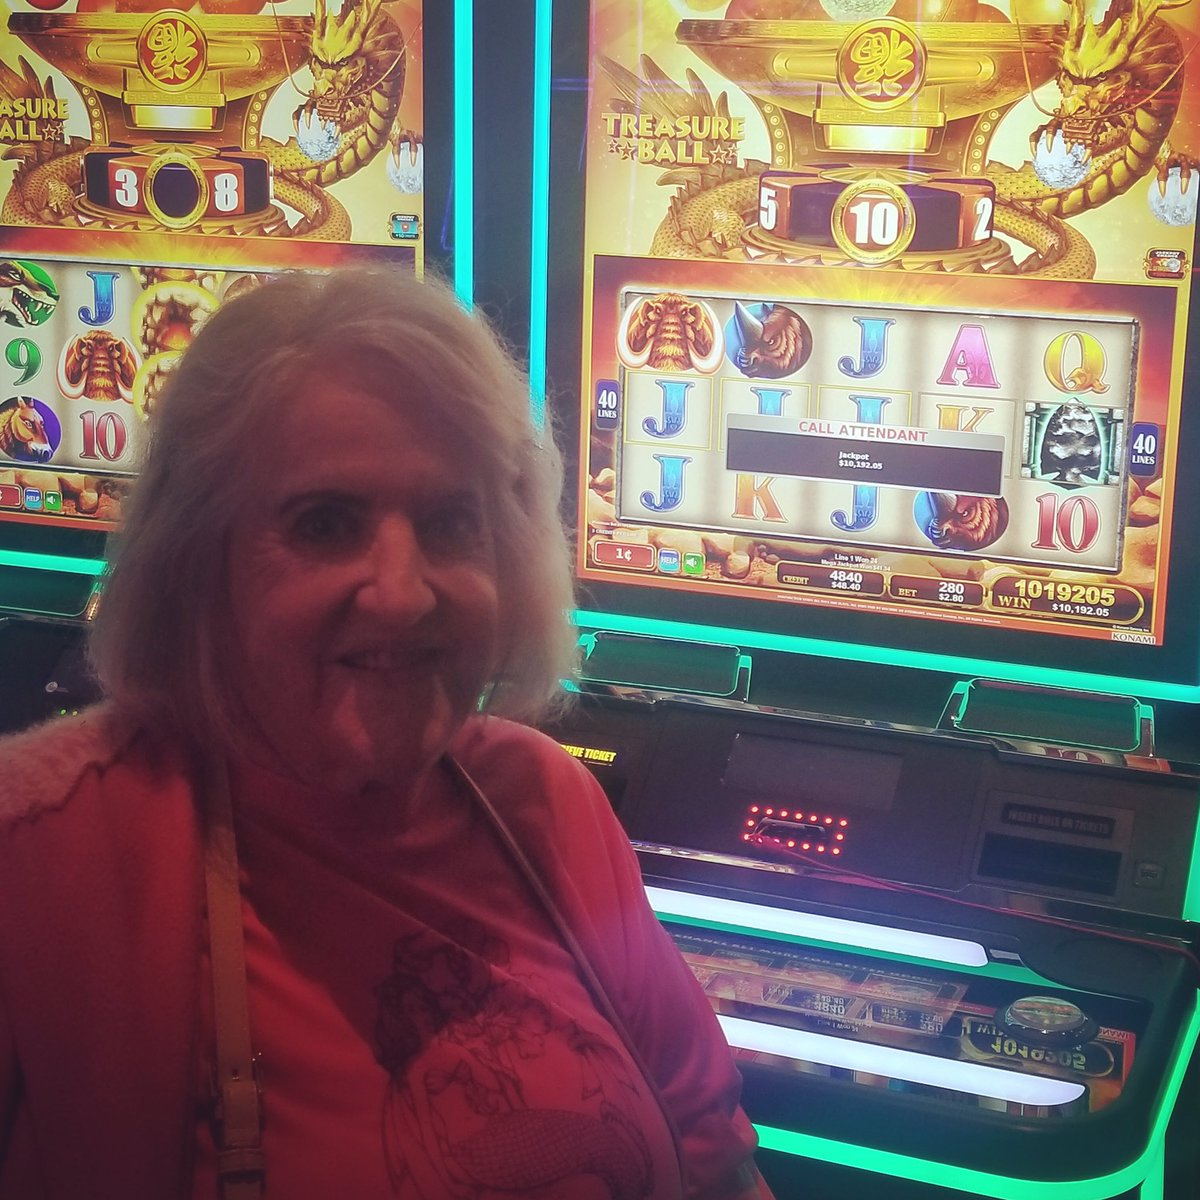 Judith won $10,192. Not a bad day. Congrats on your jackpot! 💵💵